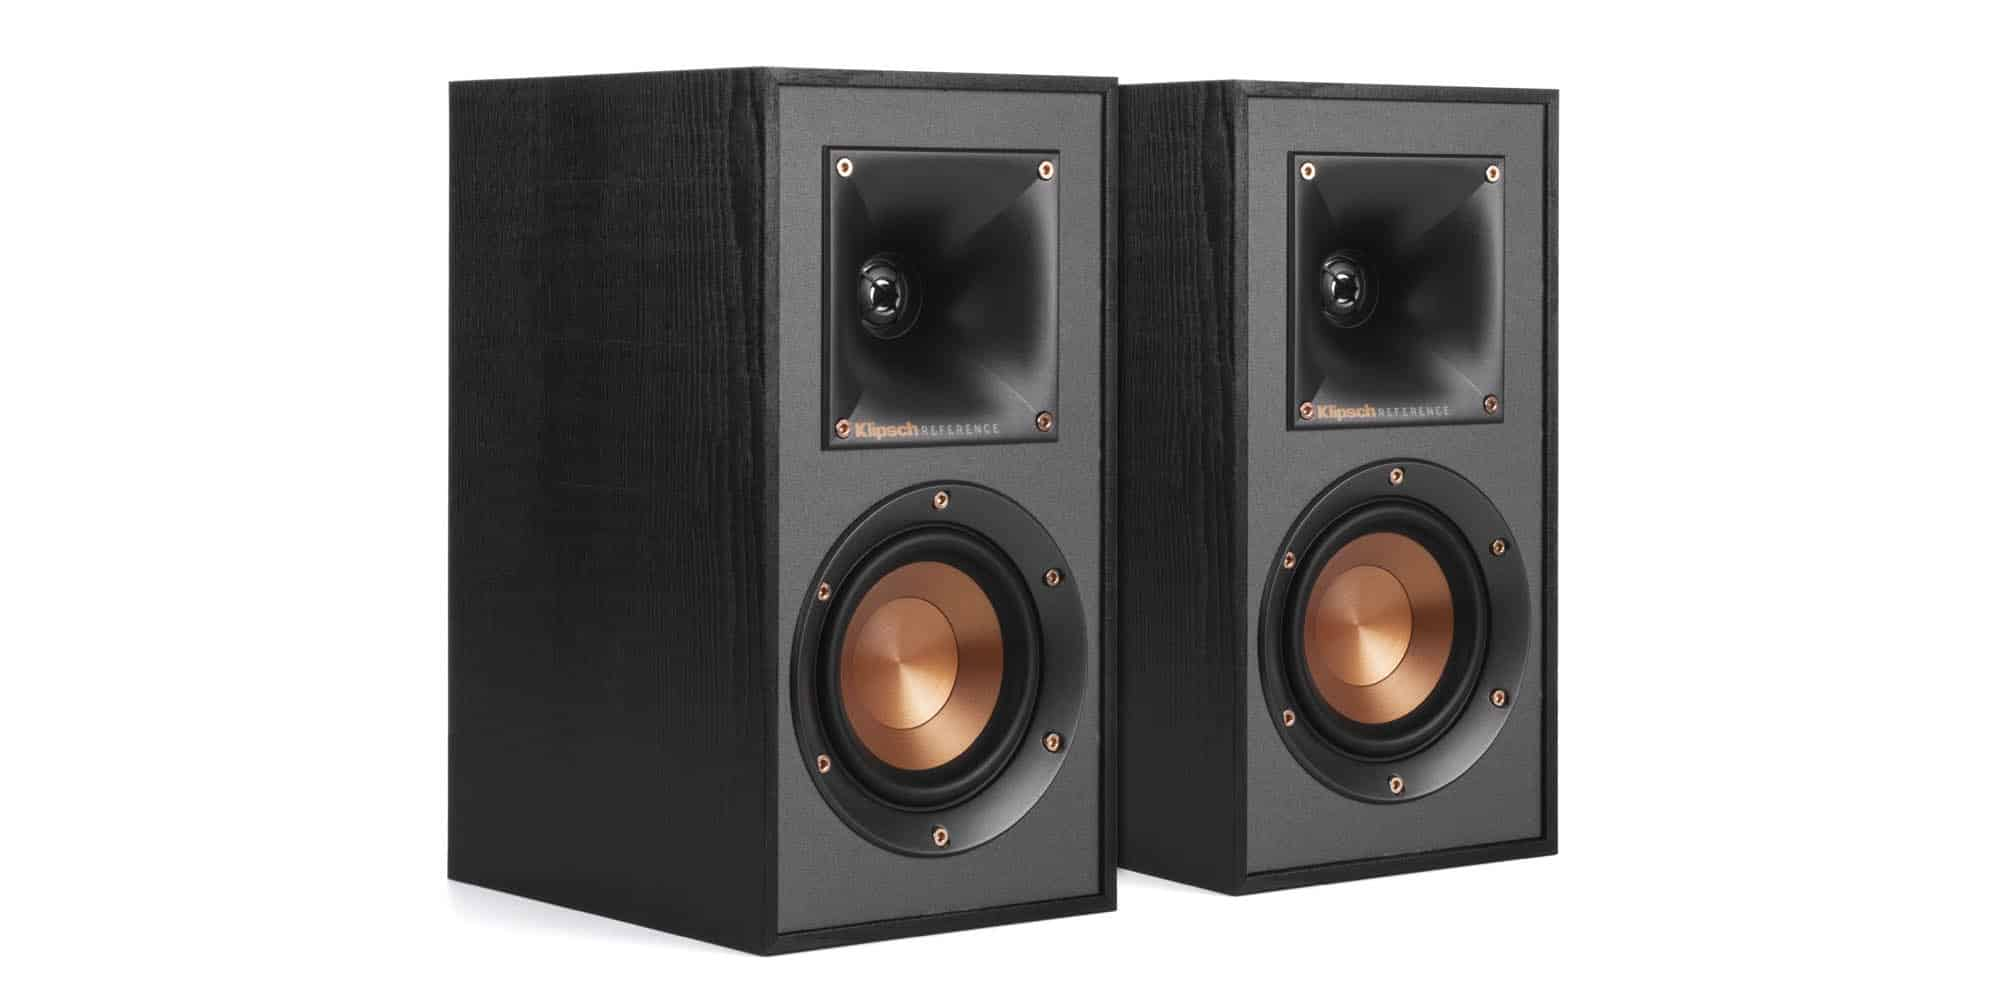 featured image for klipsch r-41m review